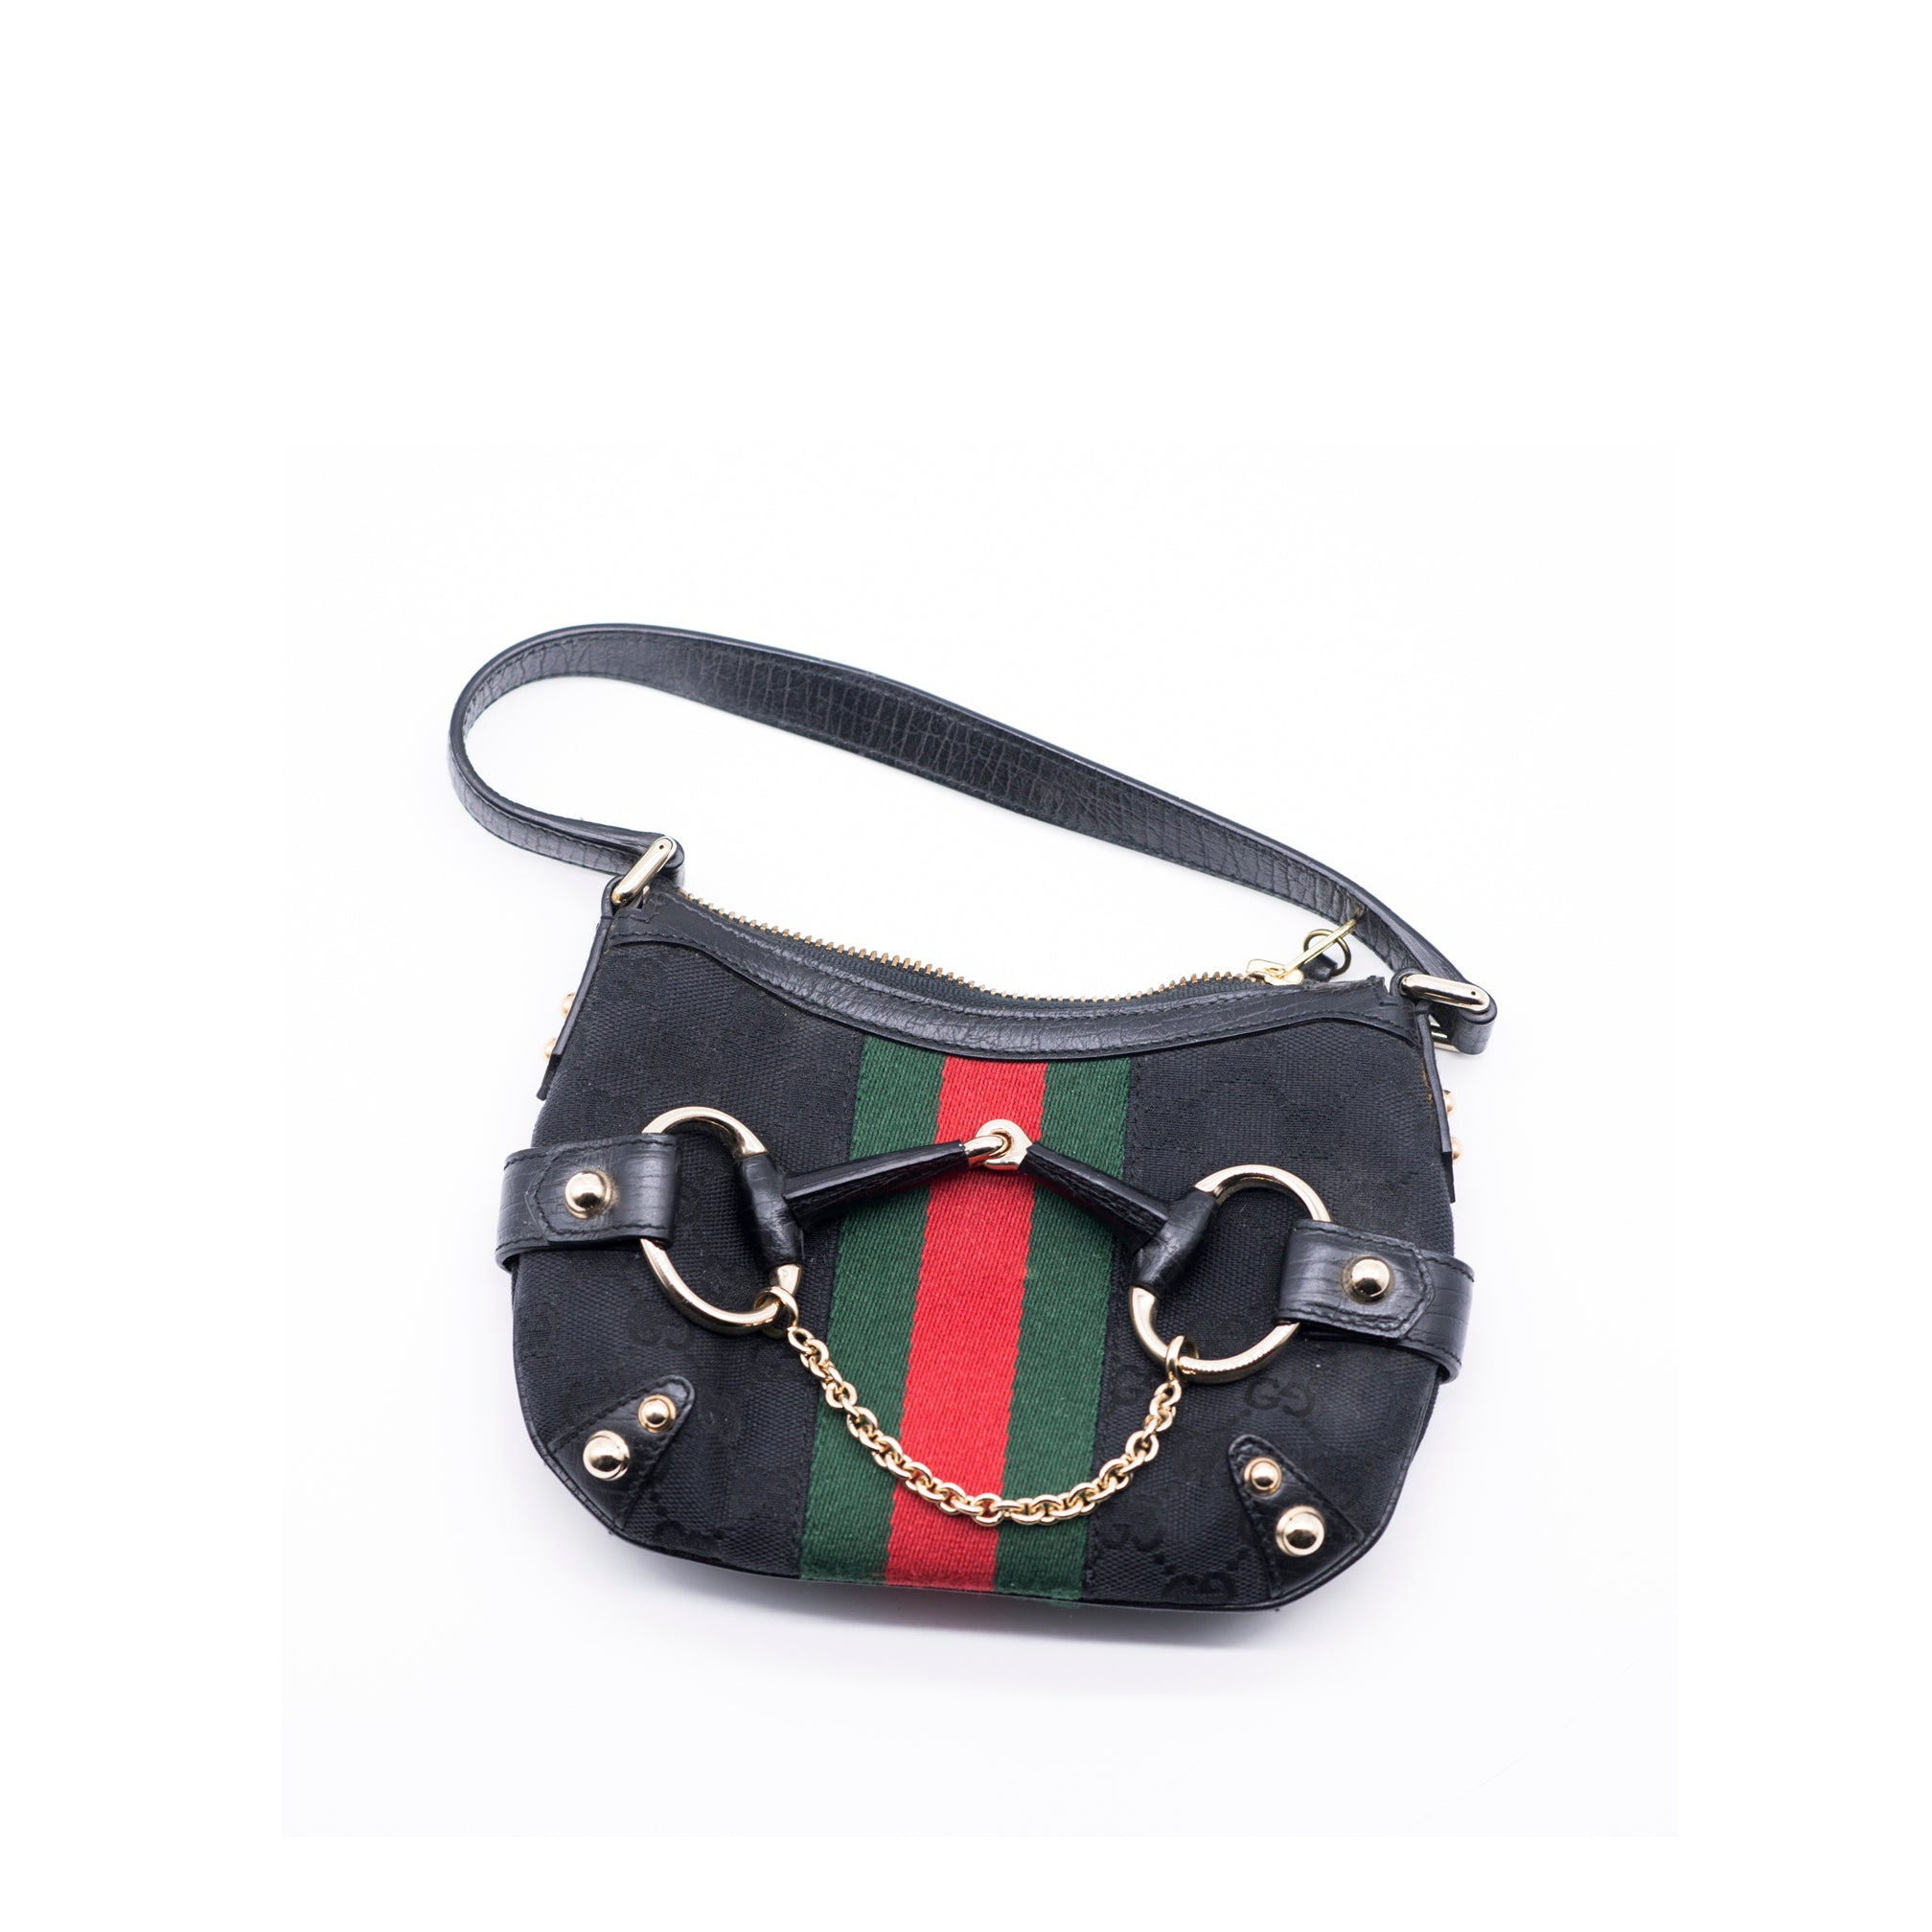 9e192988bd5 GUCCI Monogram GG Canvas Web Gold Horsebit Chain Mini Shoulder Bag Tom –  Encore Resale.com